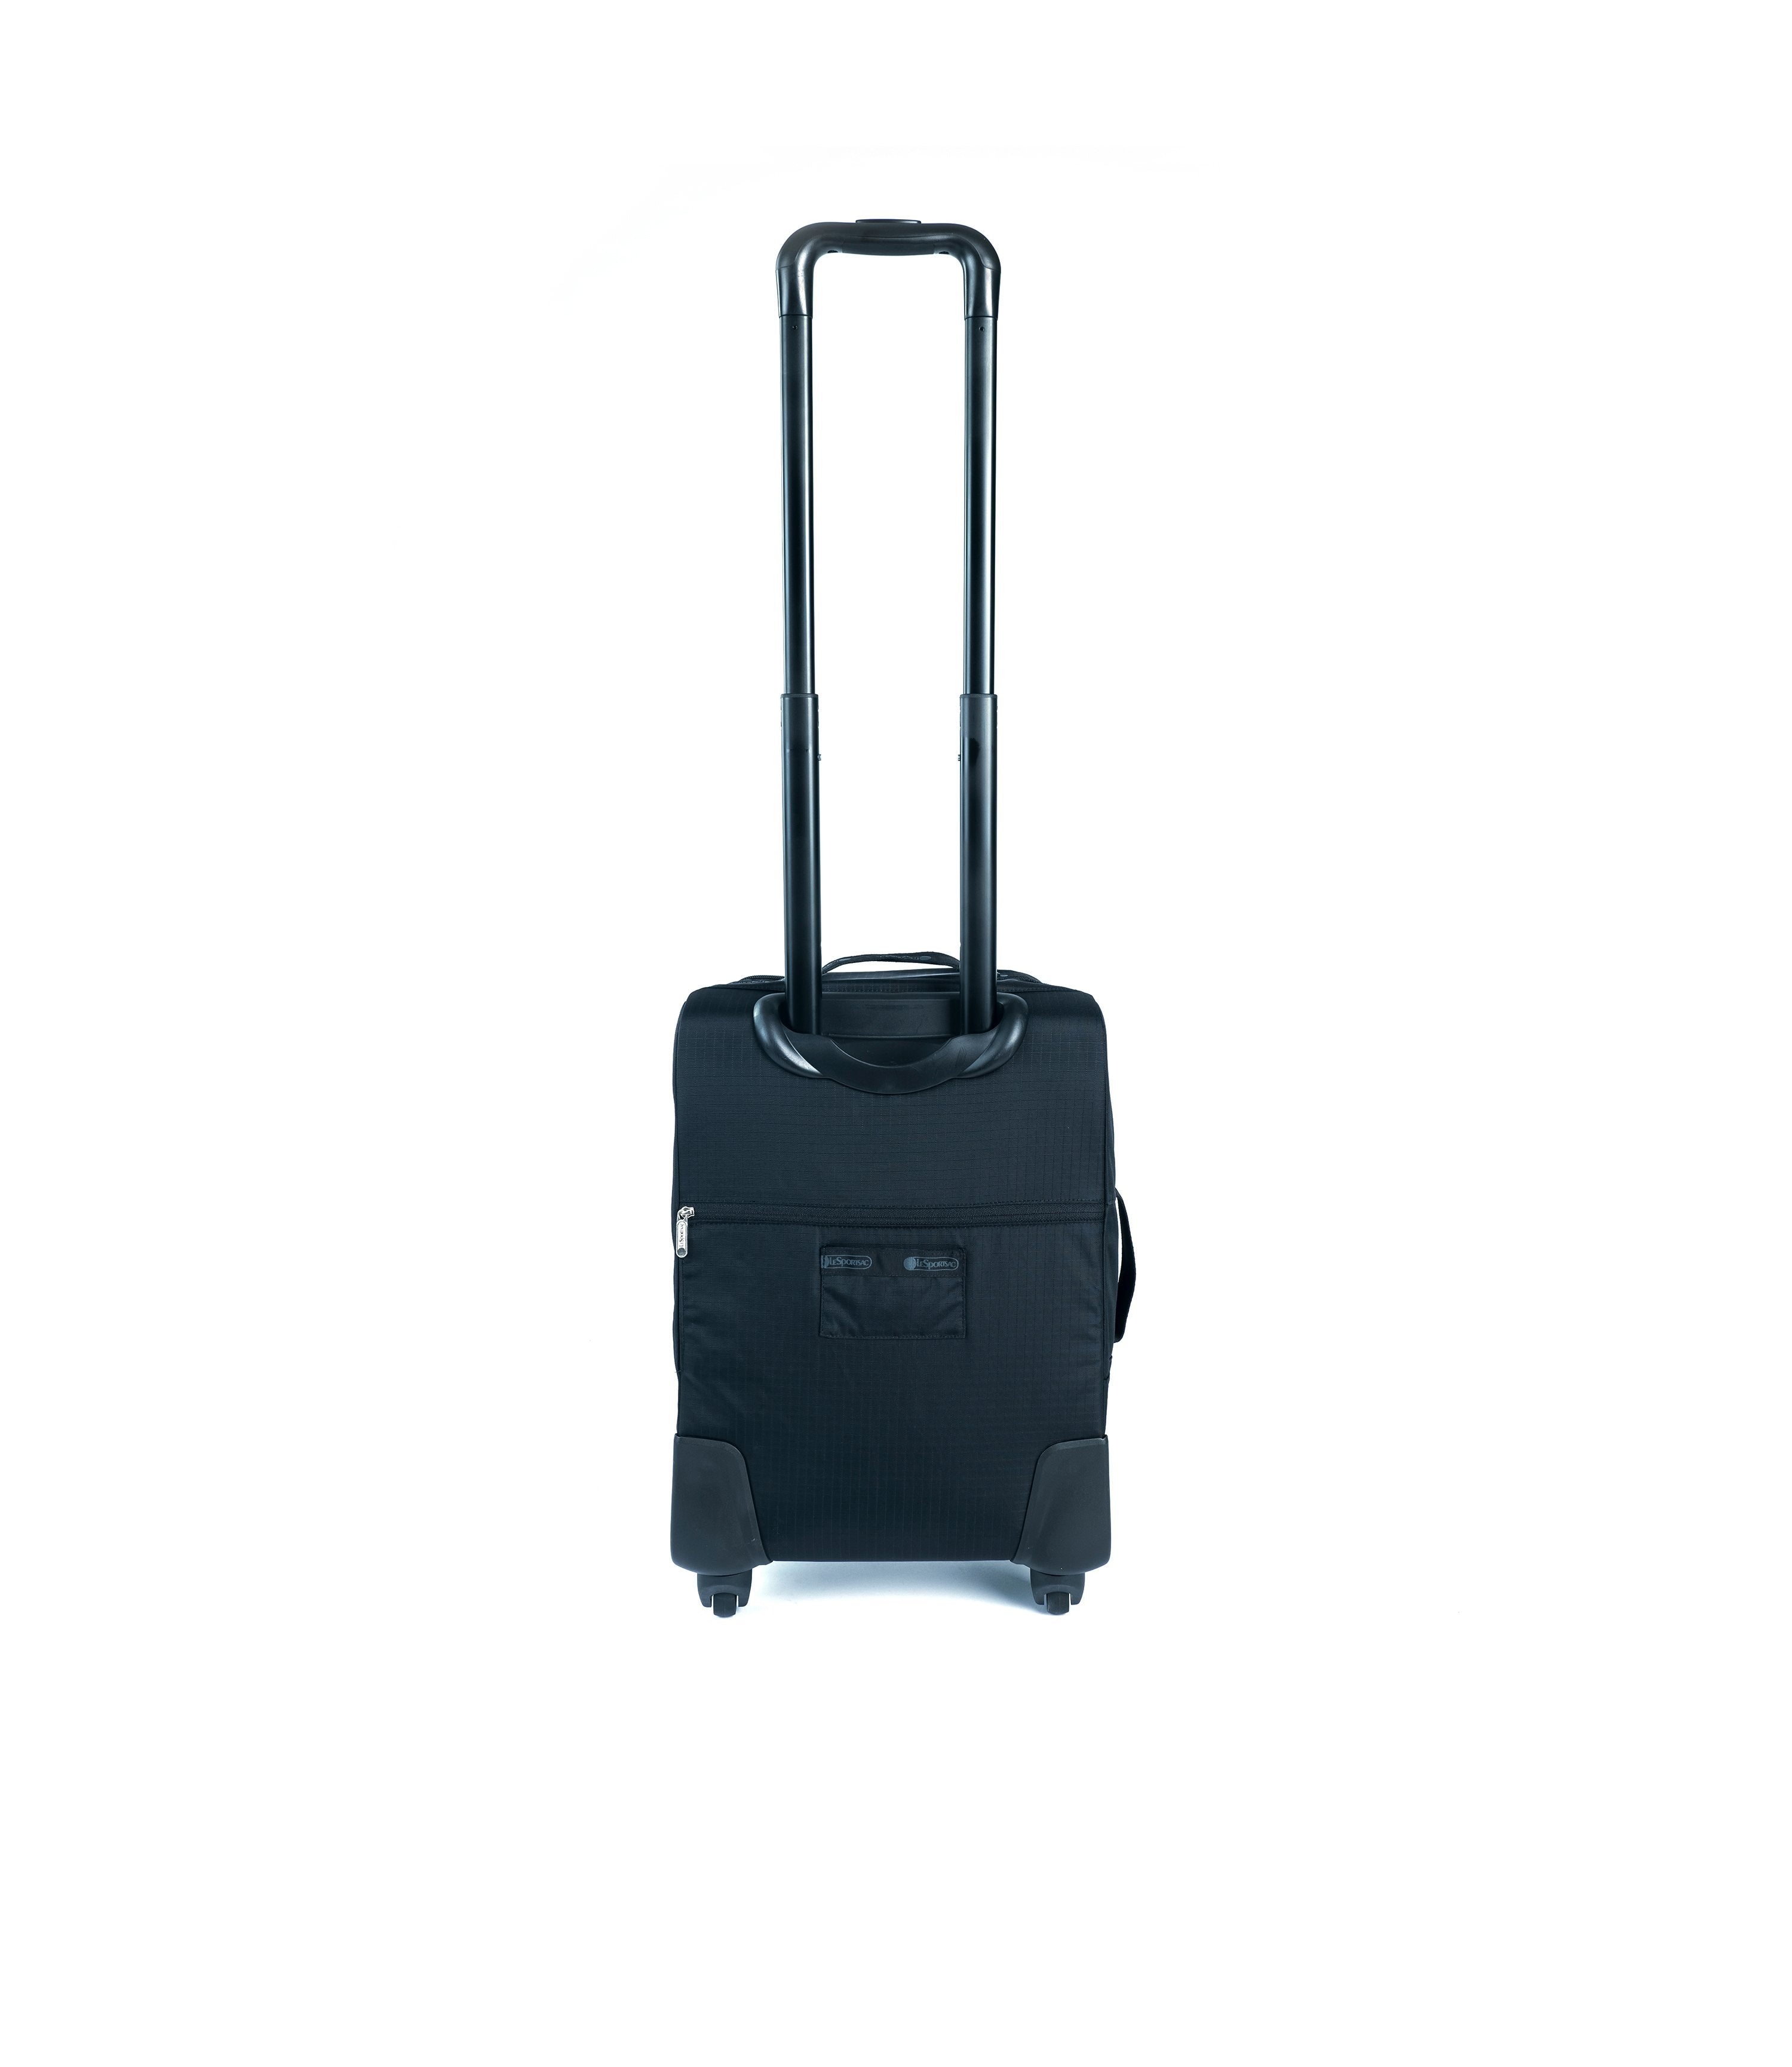 Deluxe Soft Luggage